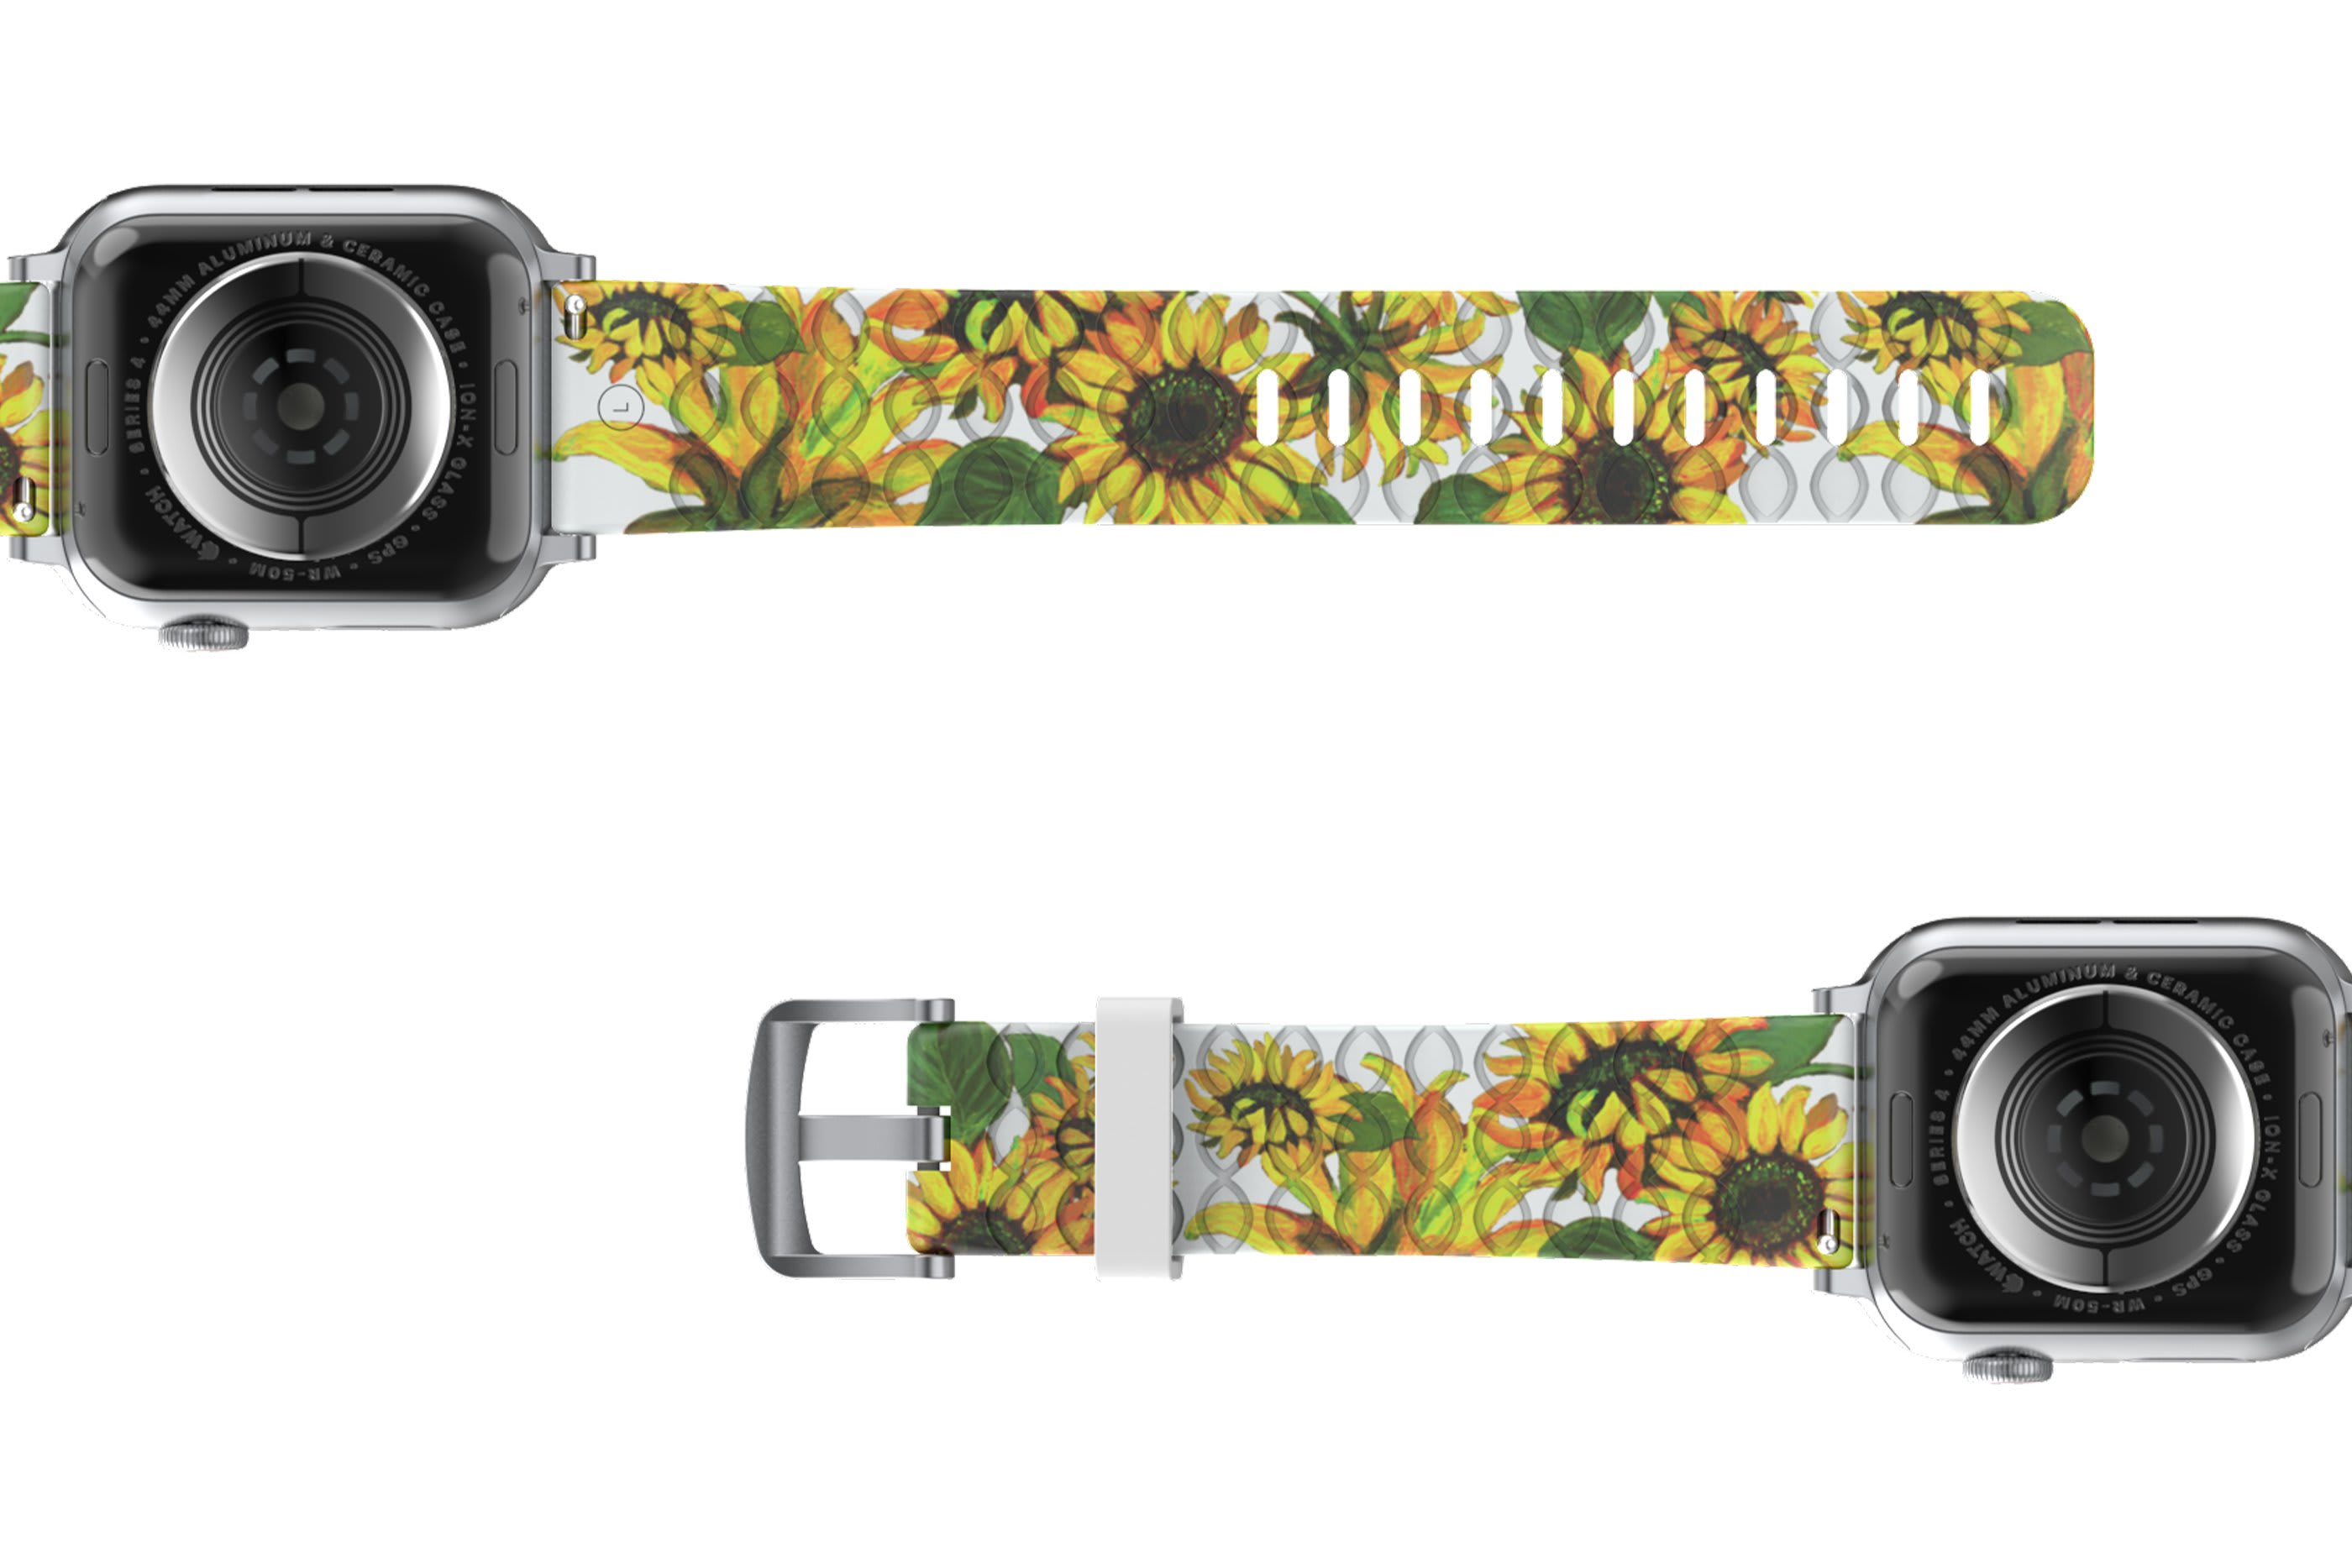 Sunflower Apple Watch Band with gray hardware viewed bottom up